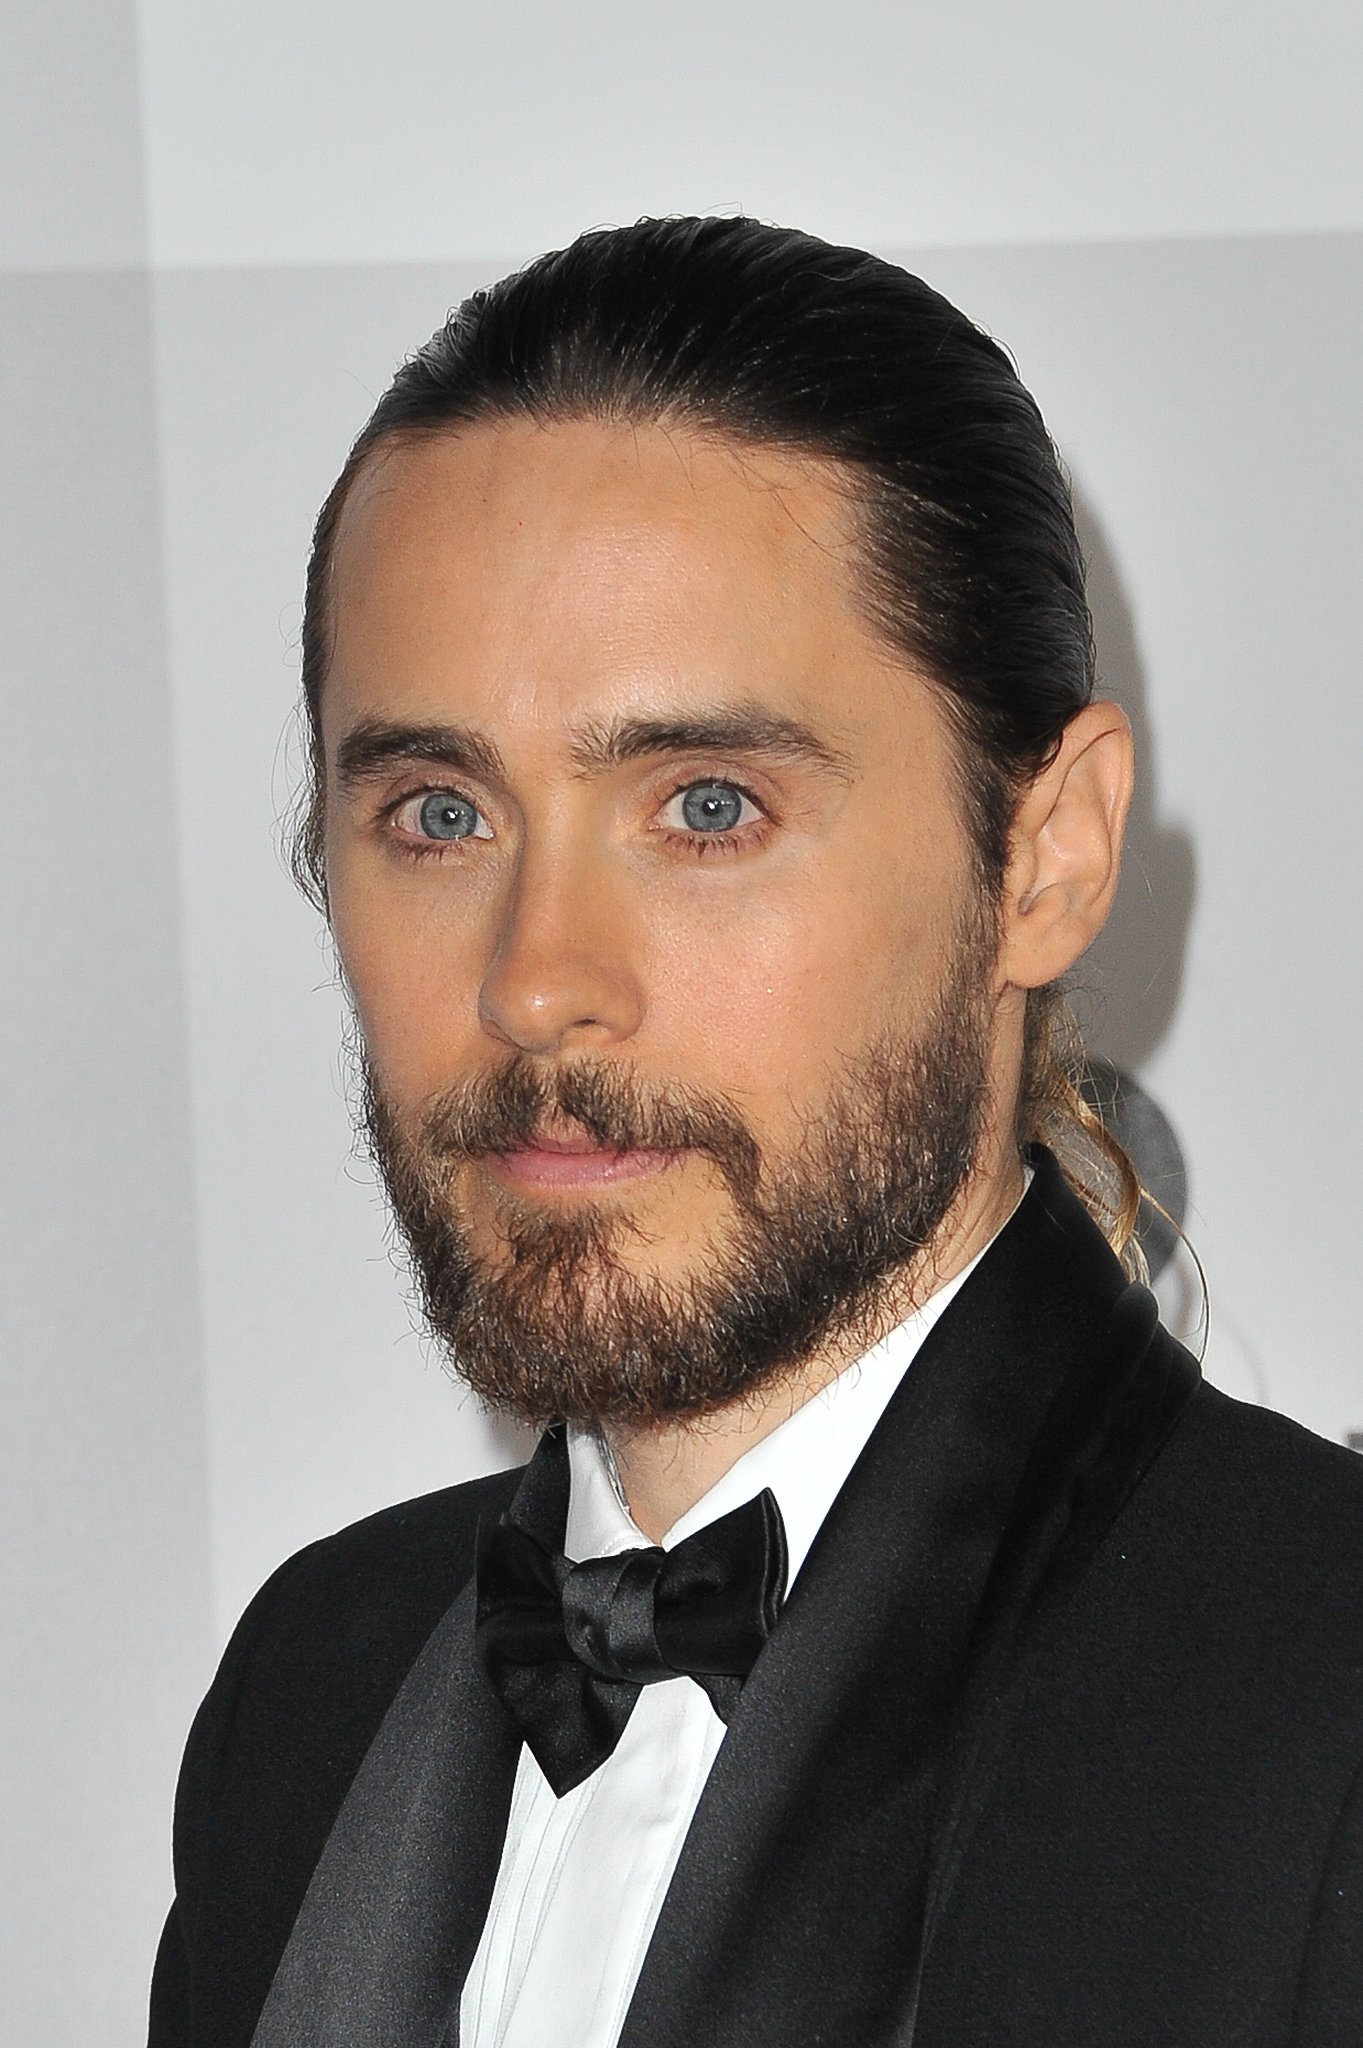 Jared Leto's Hair in a Ponytail at Golden Globes 2014 ... Jared Leto